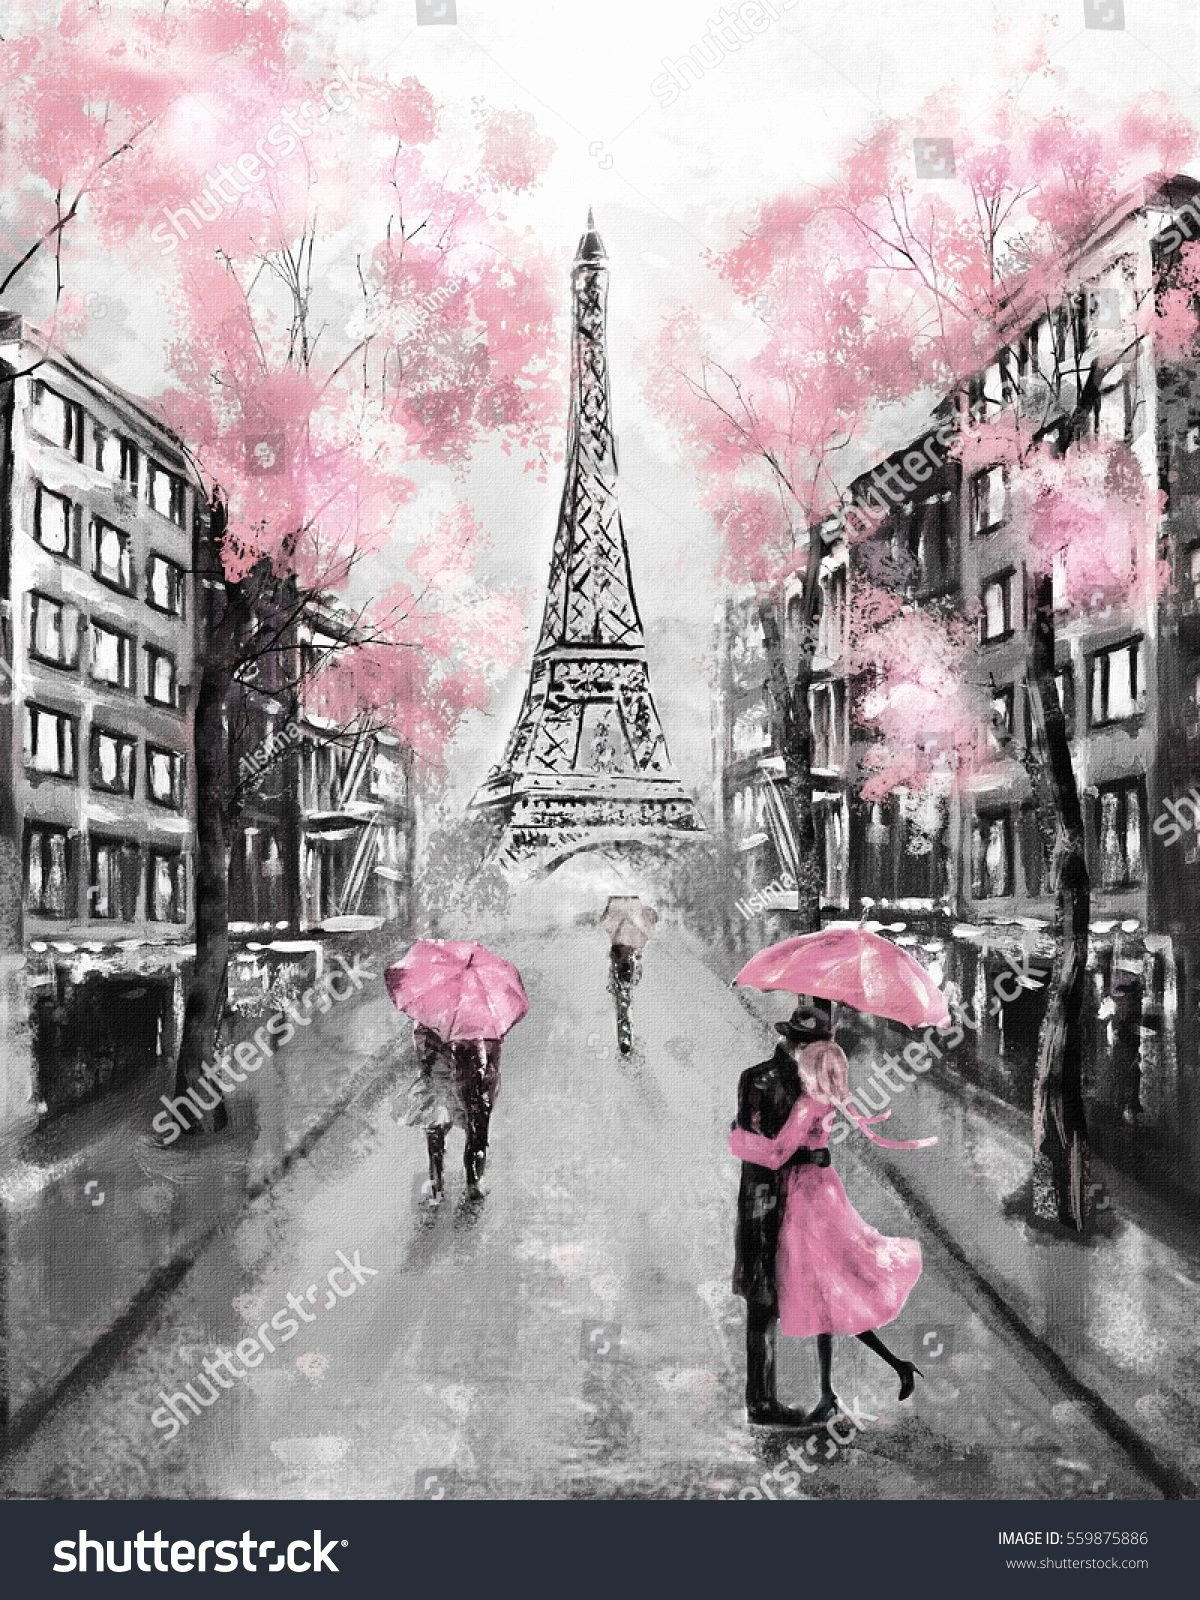 Paintings Black and White Best Of Oil Painting Paris European City Landscape France